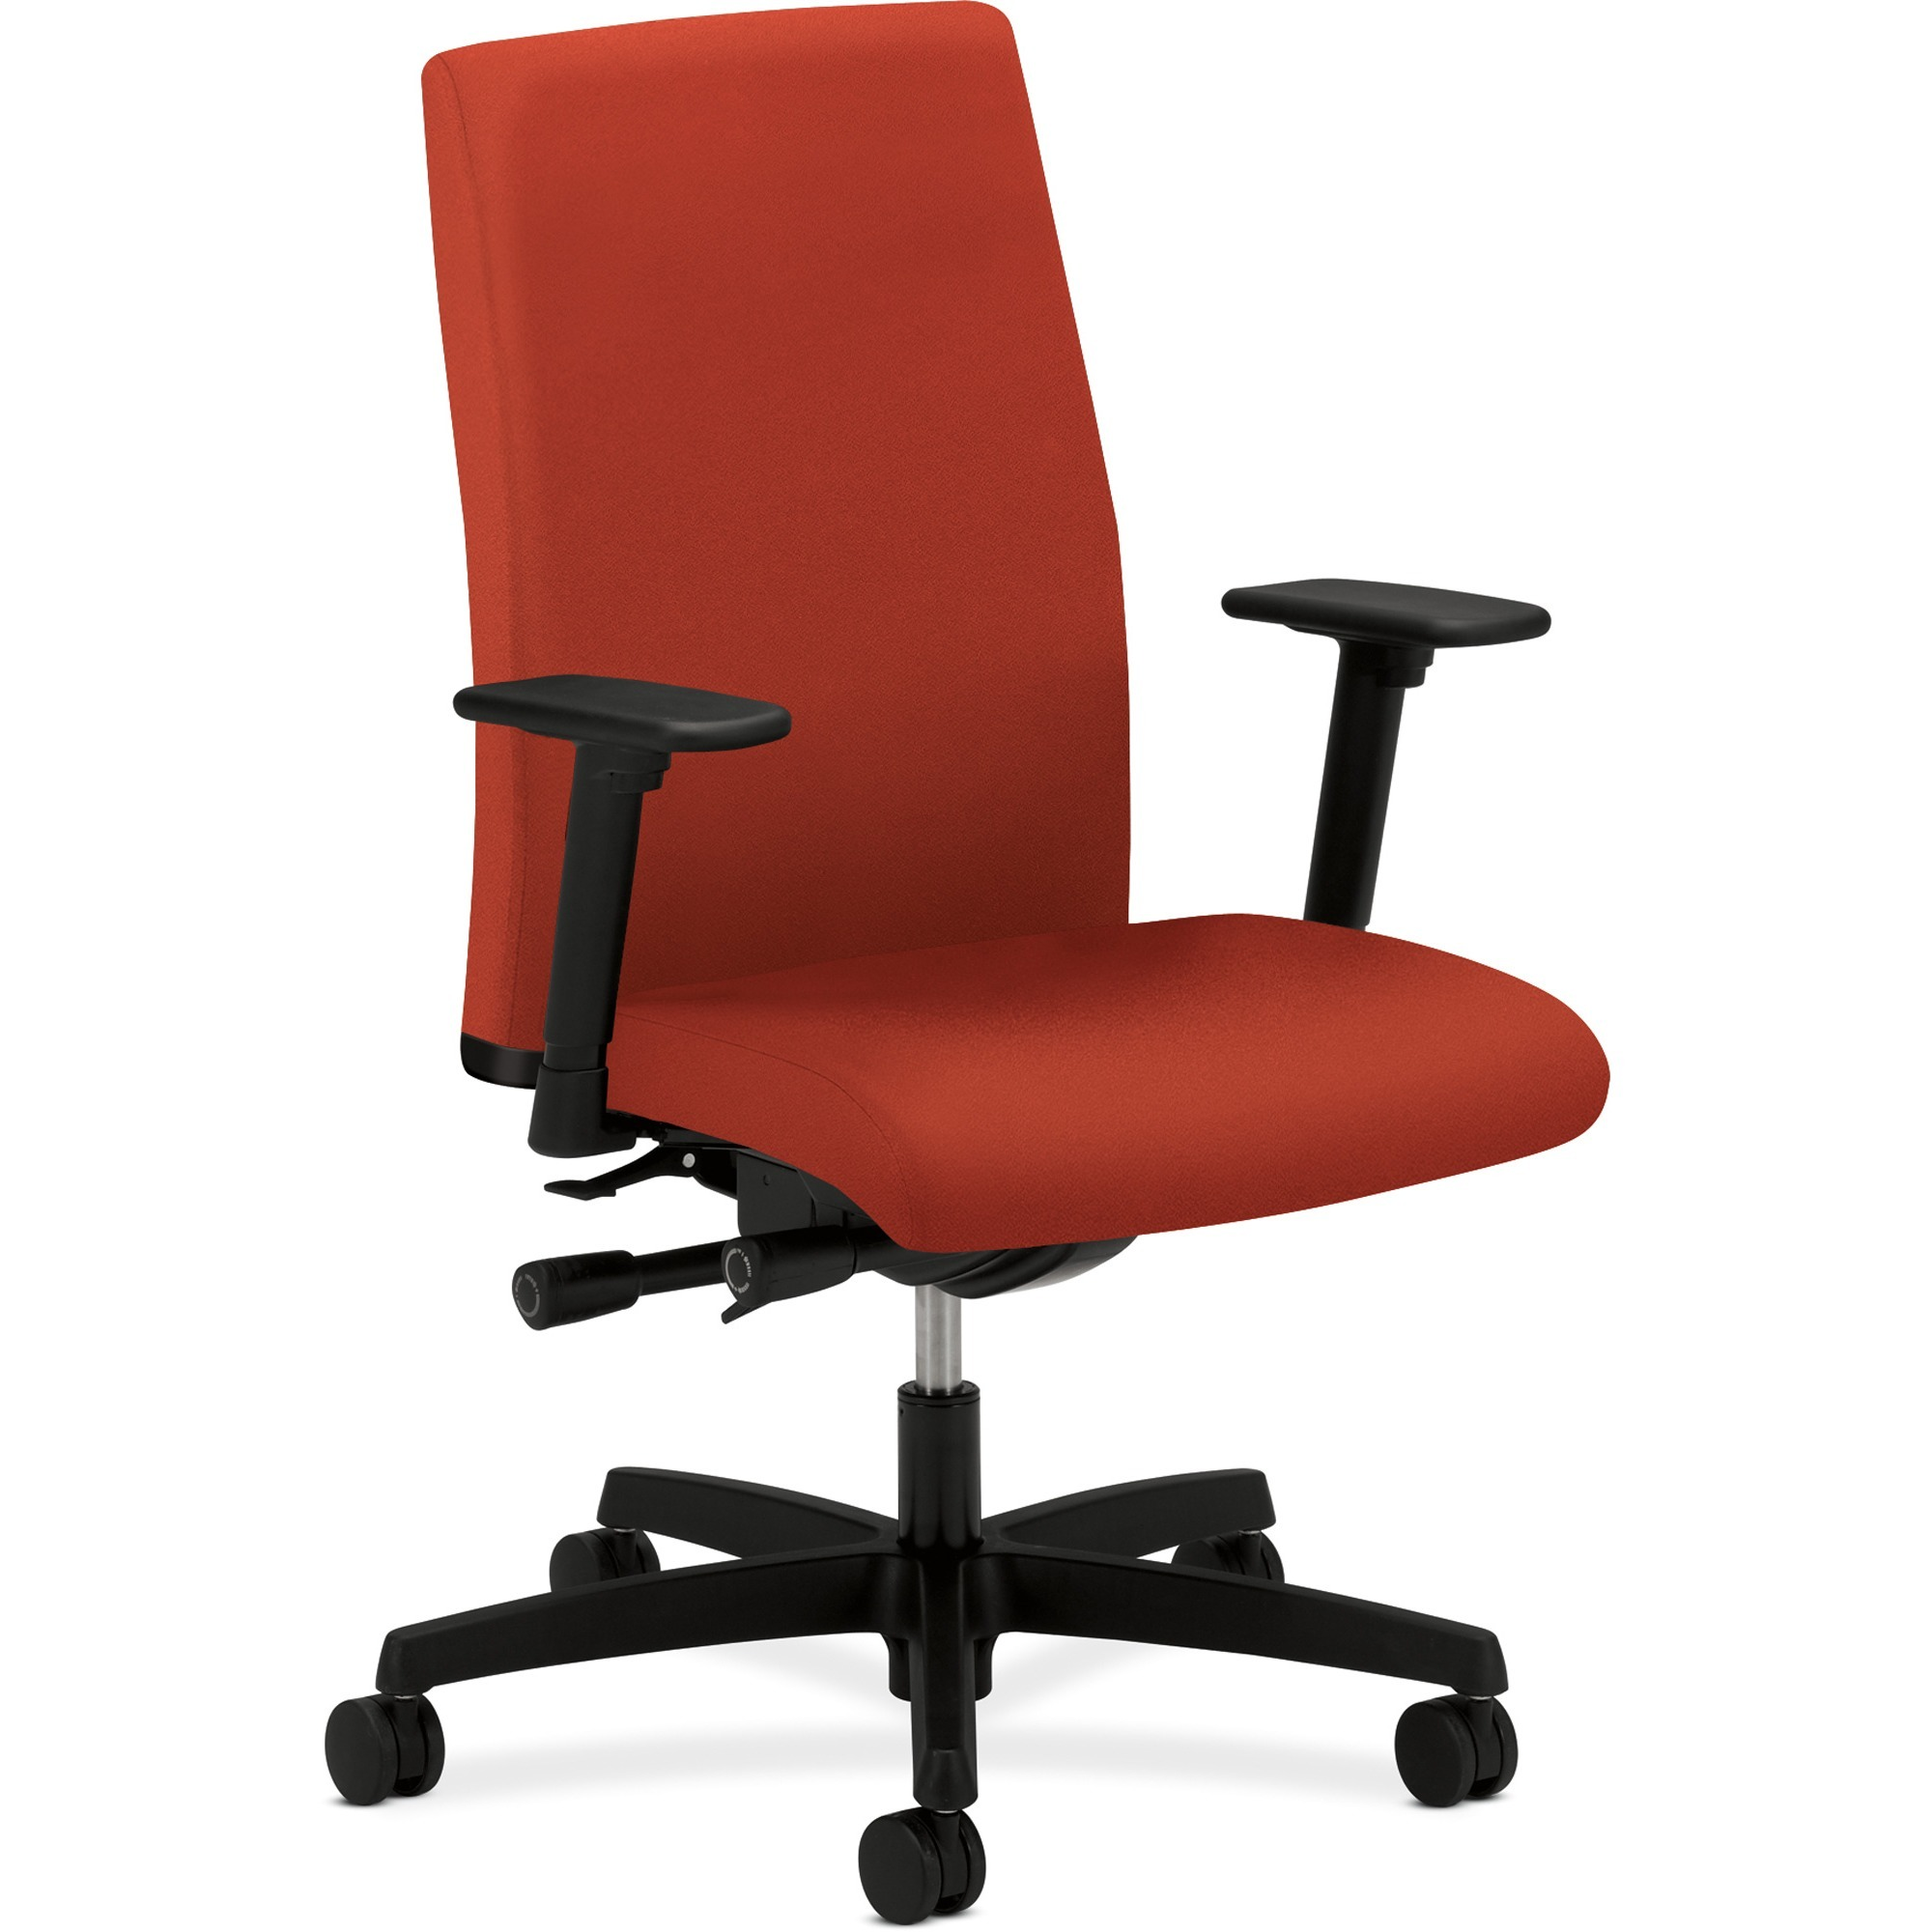 HON, HONIW104CU42, Ignition Mid-Back Task Chair, Arms, 1 Each, Crimson Red